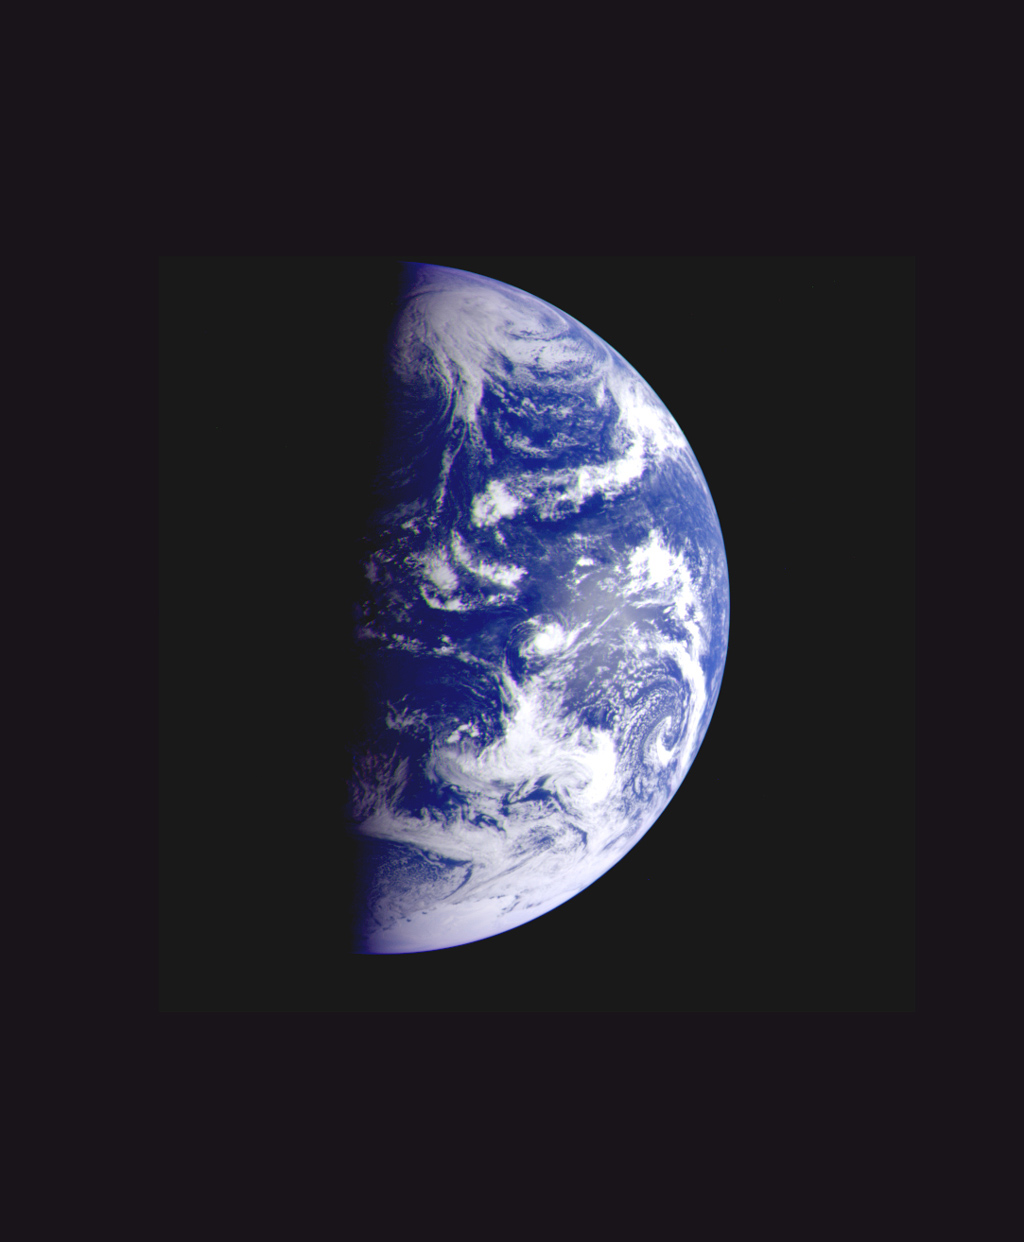 This color image of the Earth was taken by NASA's Galileo spacecraft on December 11 as it departed on its 3-year flight to Jupiter, about 2 1/2 days after the second Earth flyby.